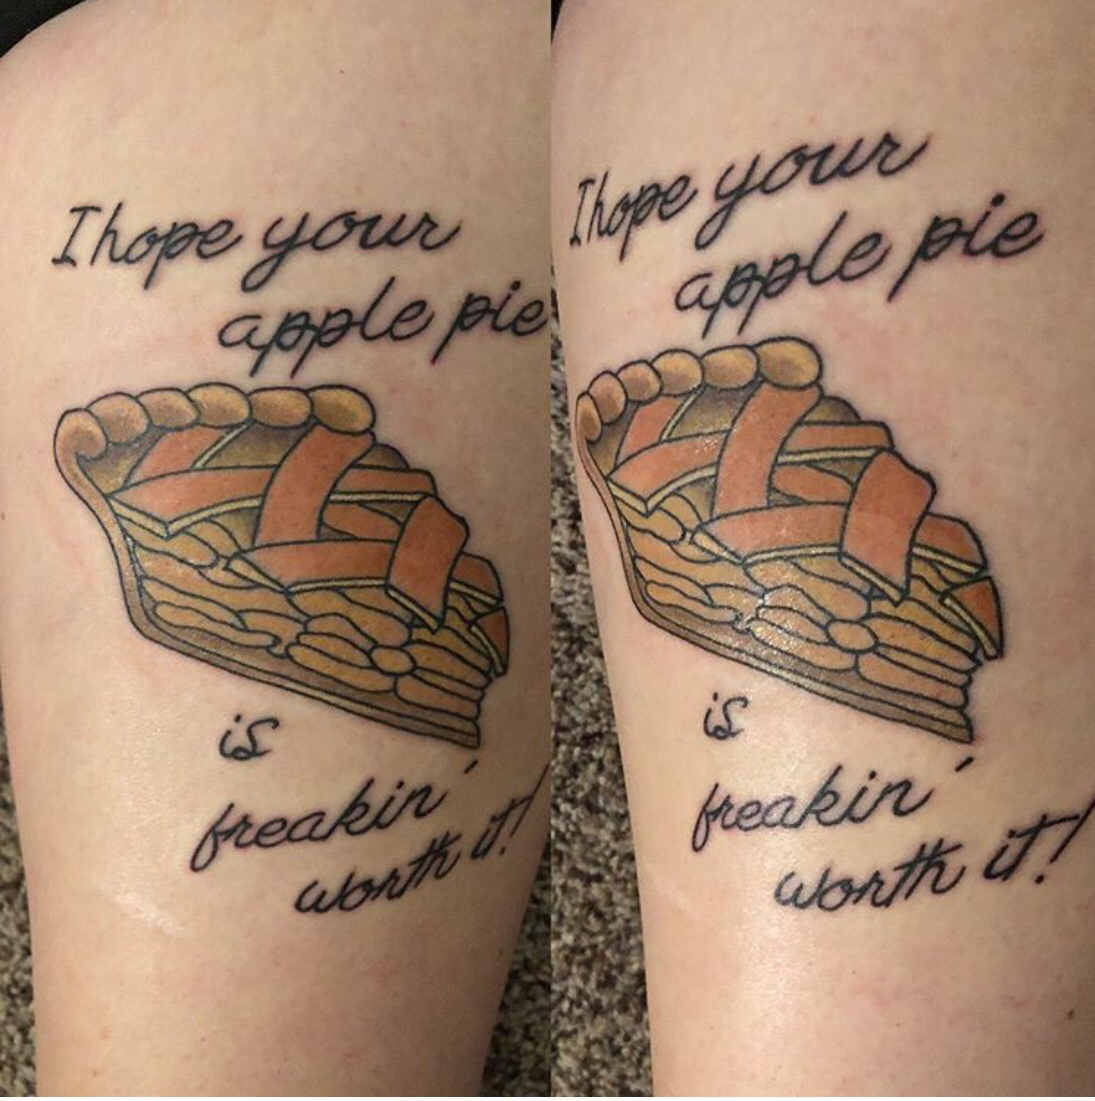 I hope your apple pie is freaking worth it